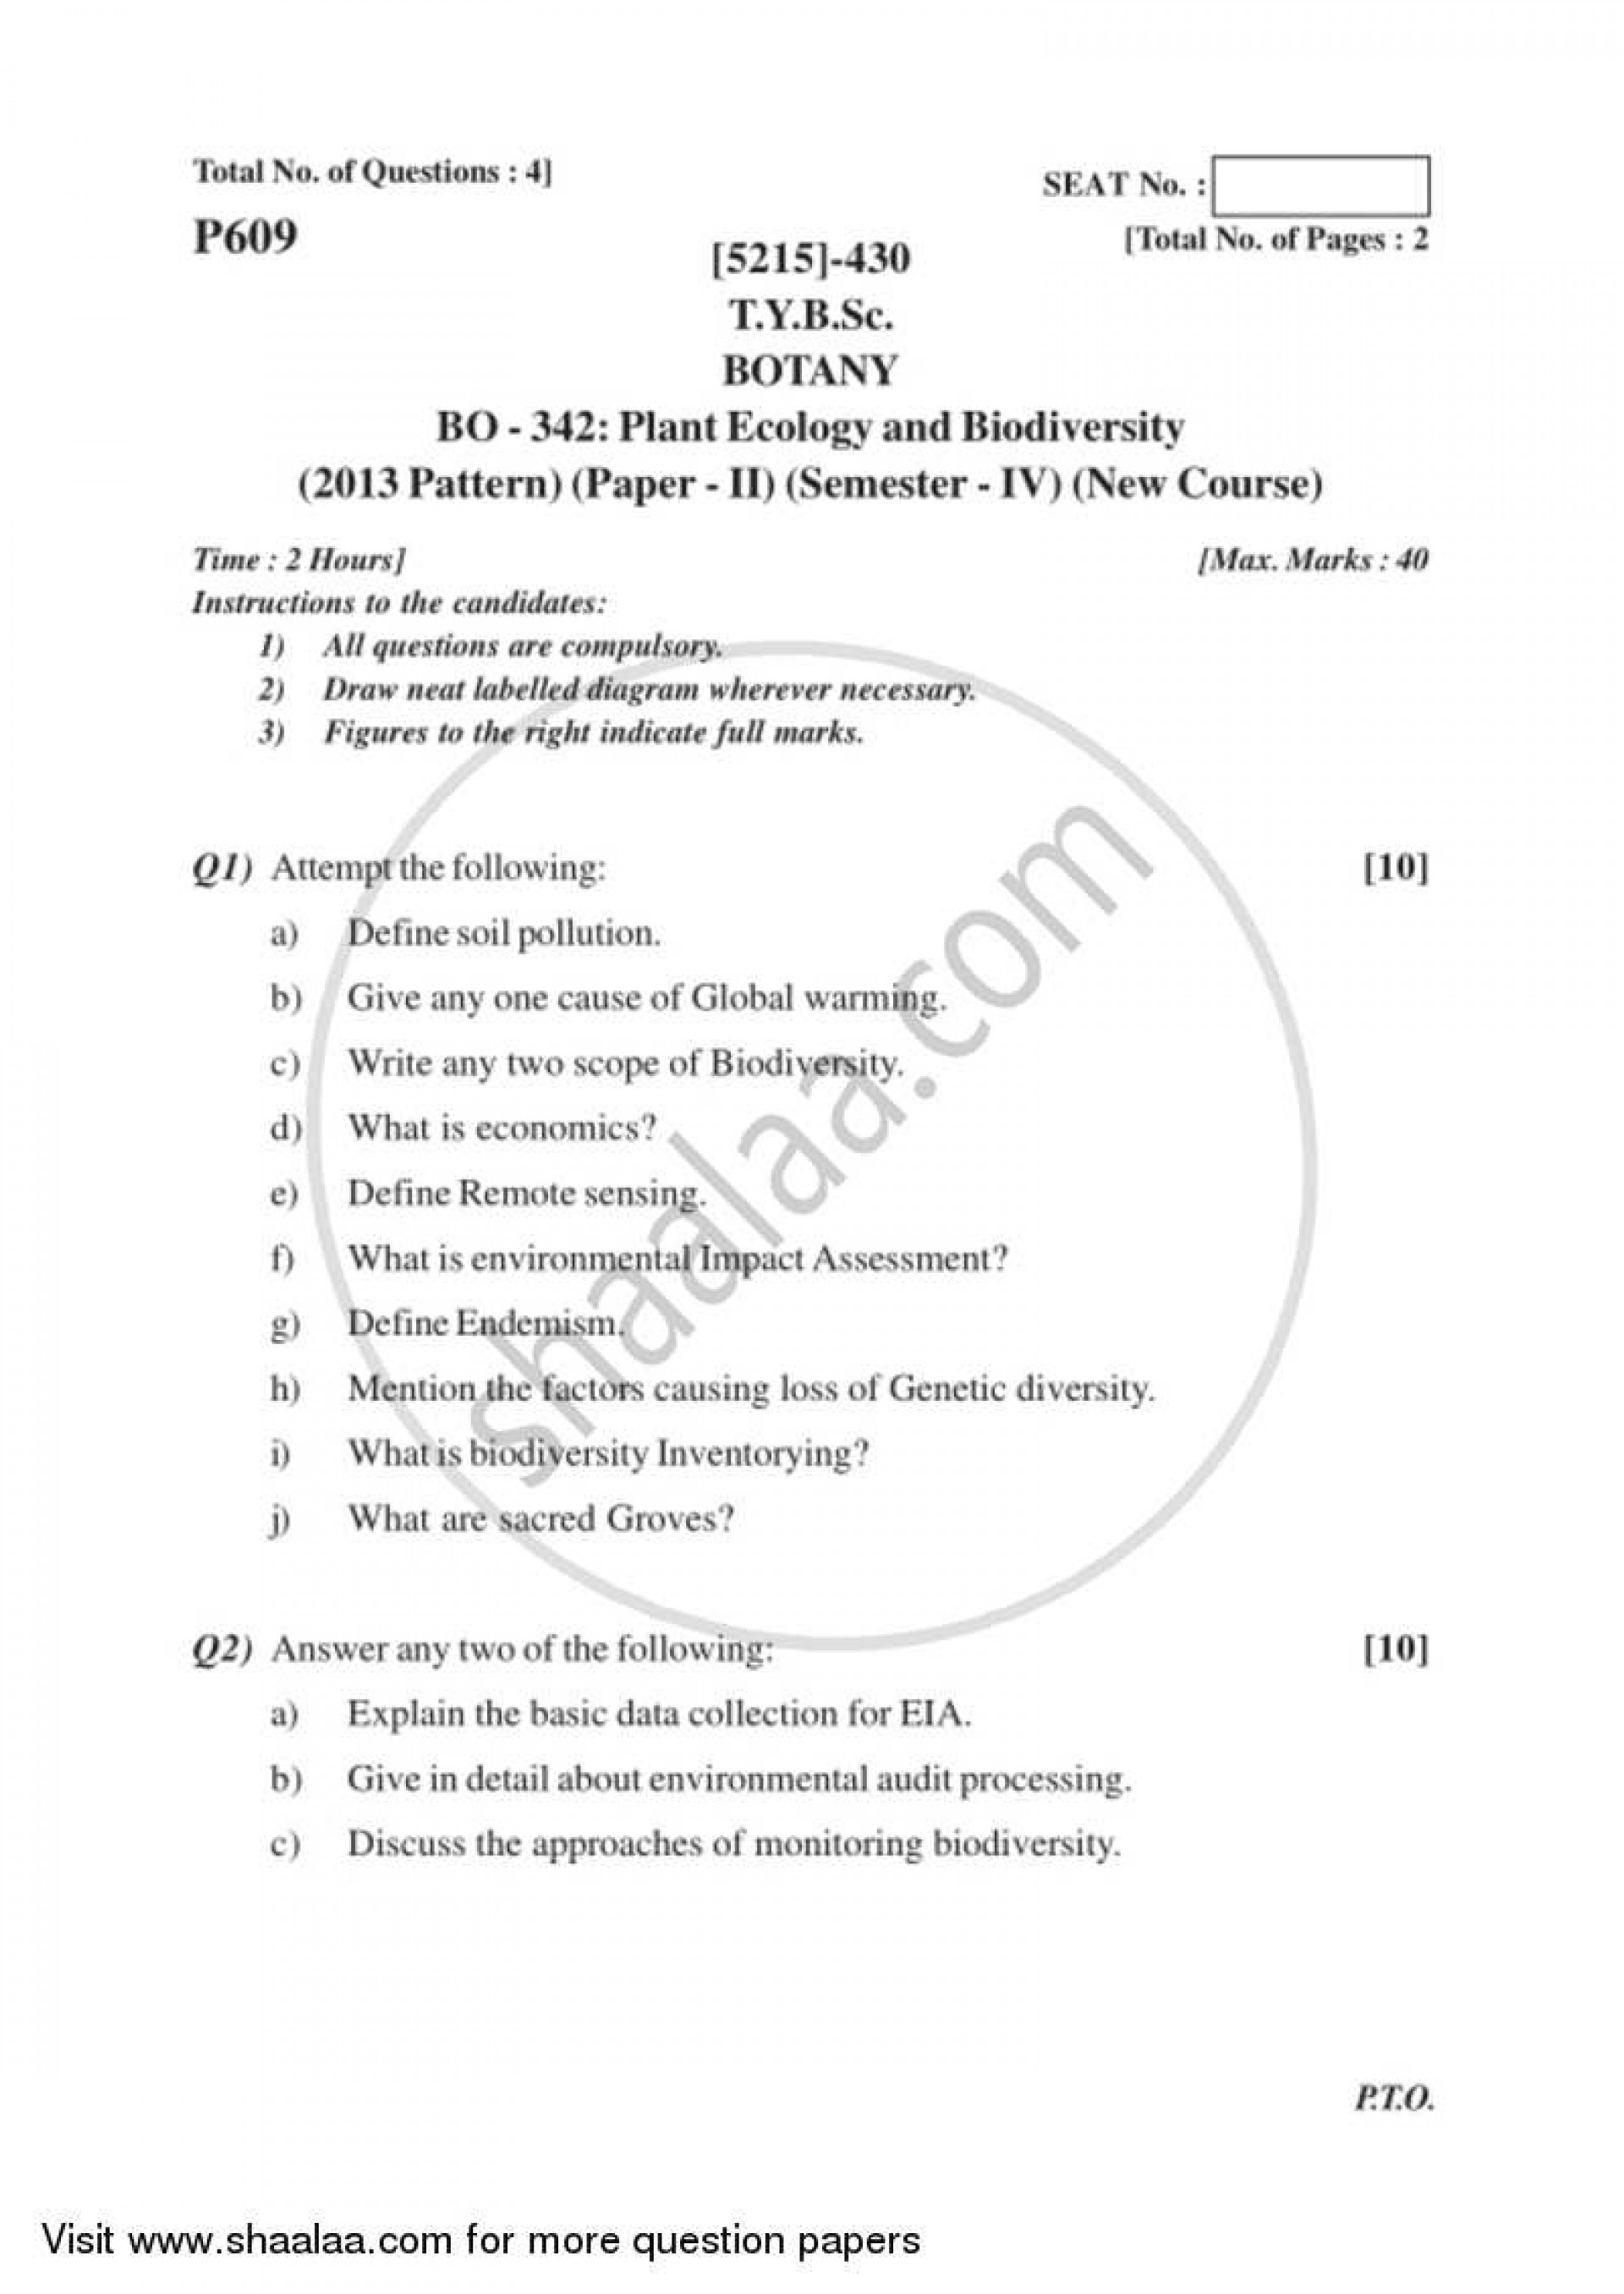 017 Essay Example University Of Pune Bachelor Bsc Plant Ecology Biodiversity Semester Tybsc Pattern 2ccae482ce96d4f1d9d32461736d16bdc Phenomenal Topics Questions 1920